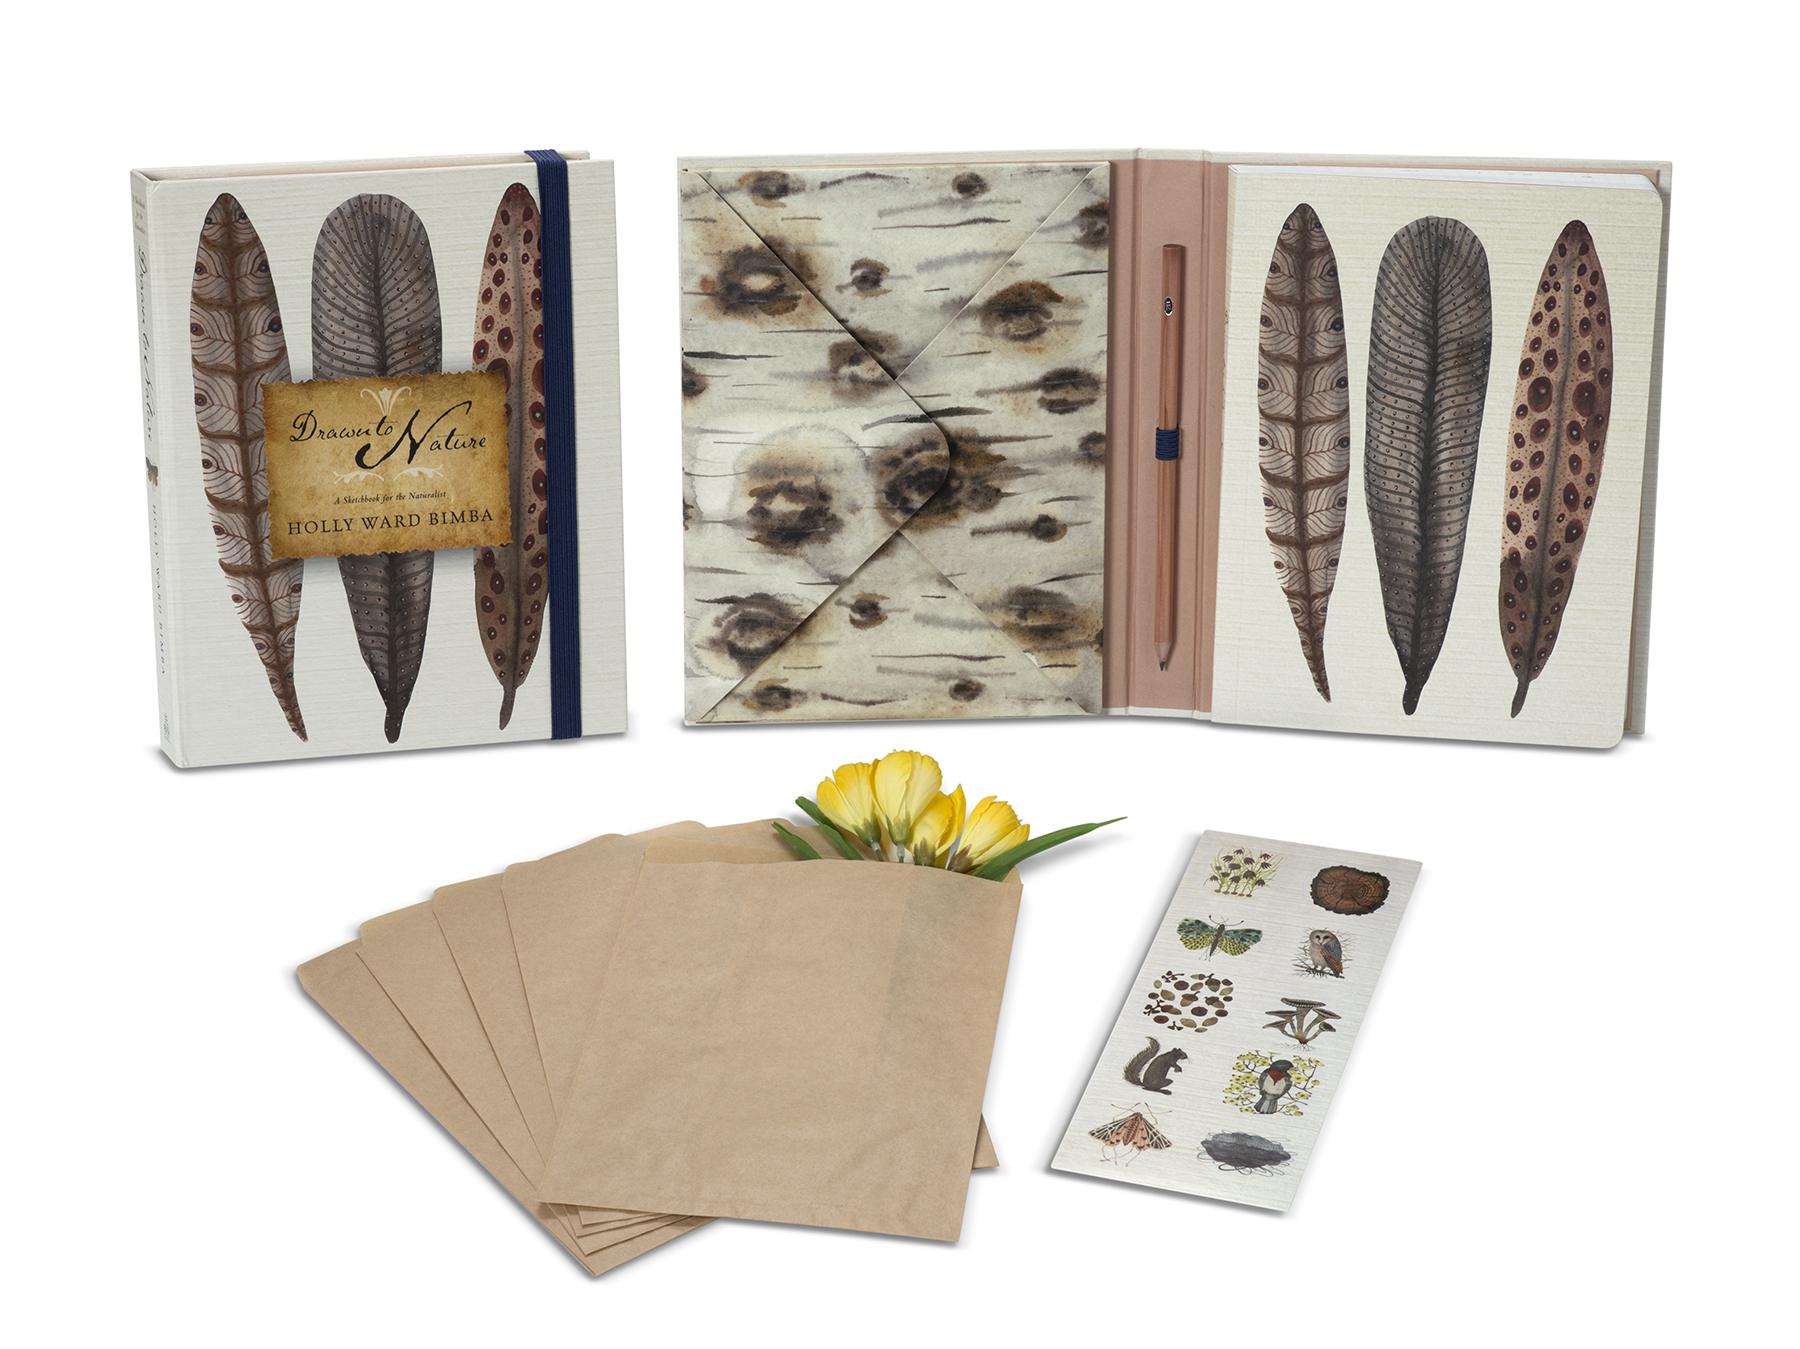 Nature Journal. This is a stationery and gift paper product journal. Designed by Heidi North